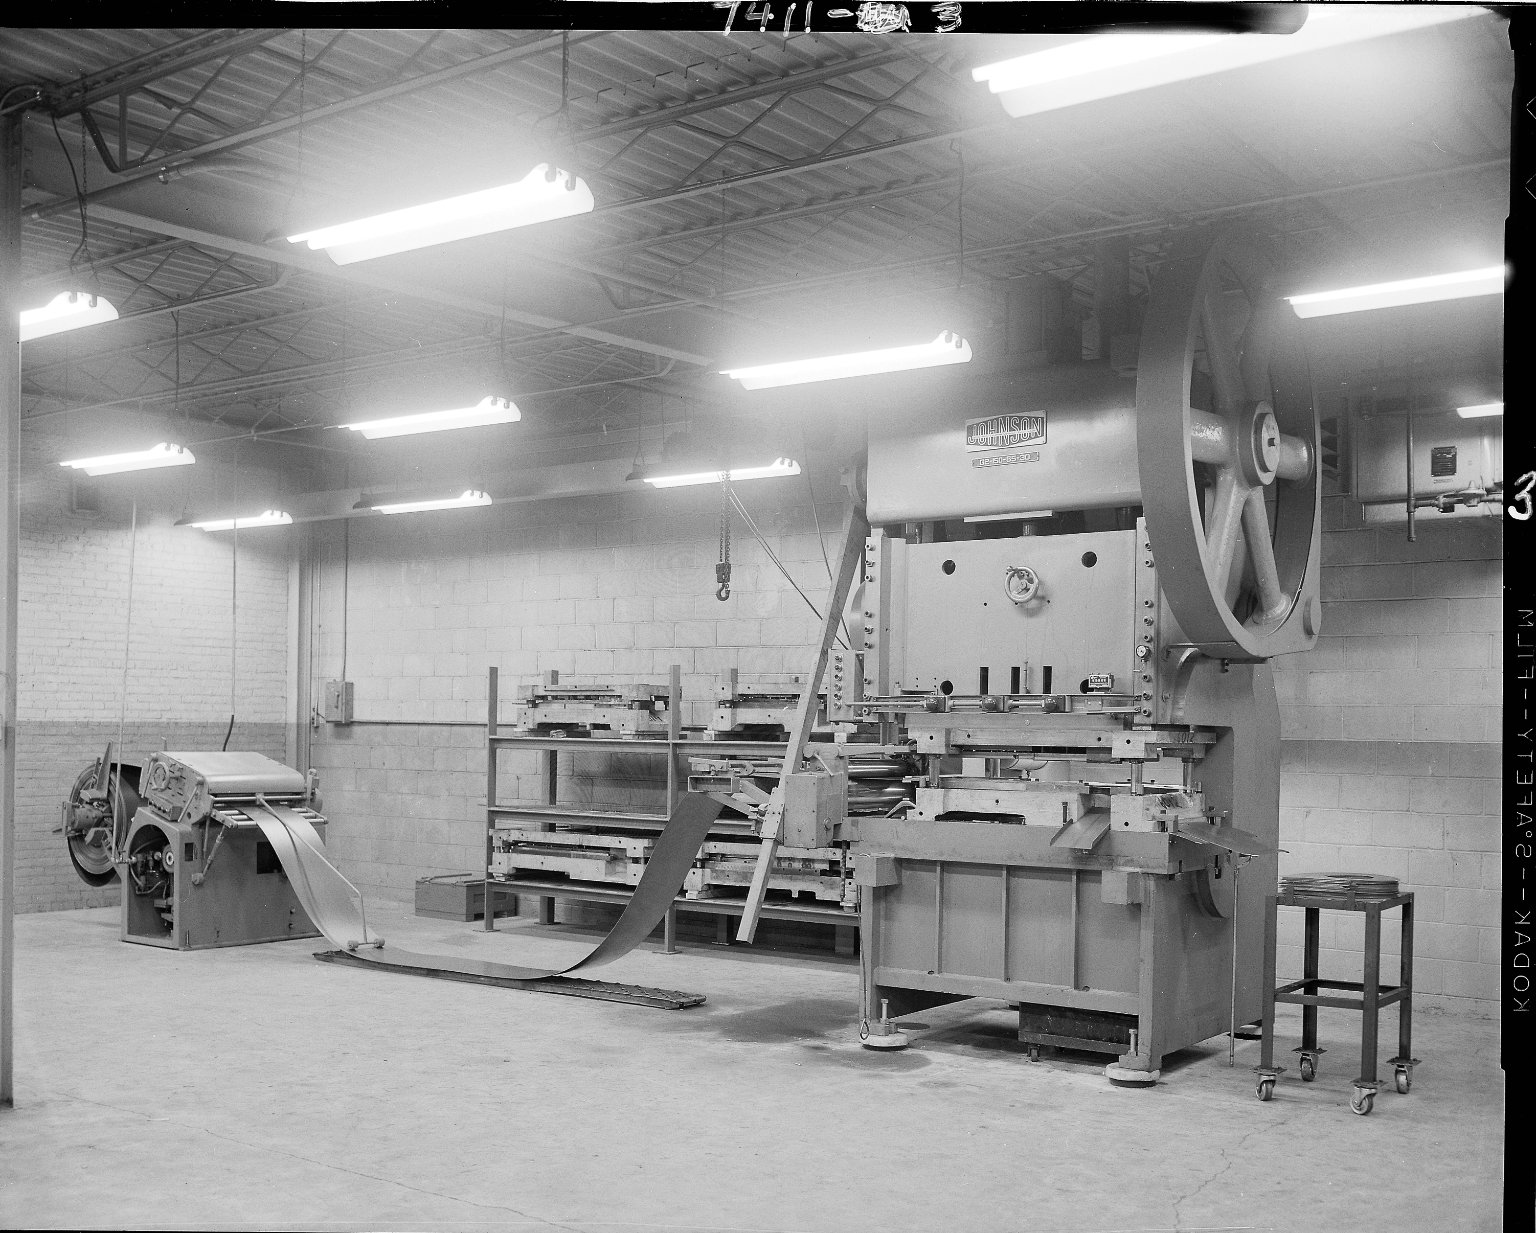 Brundage Company, industrial press